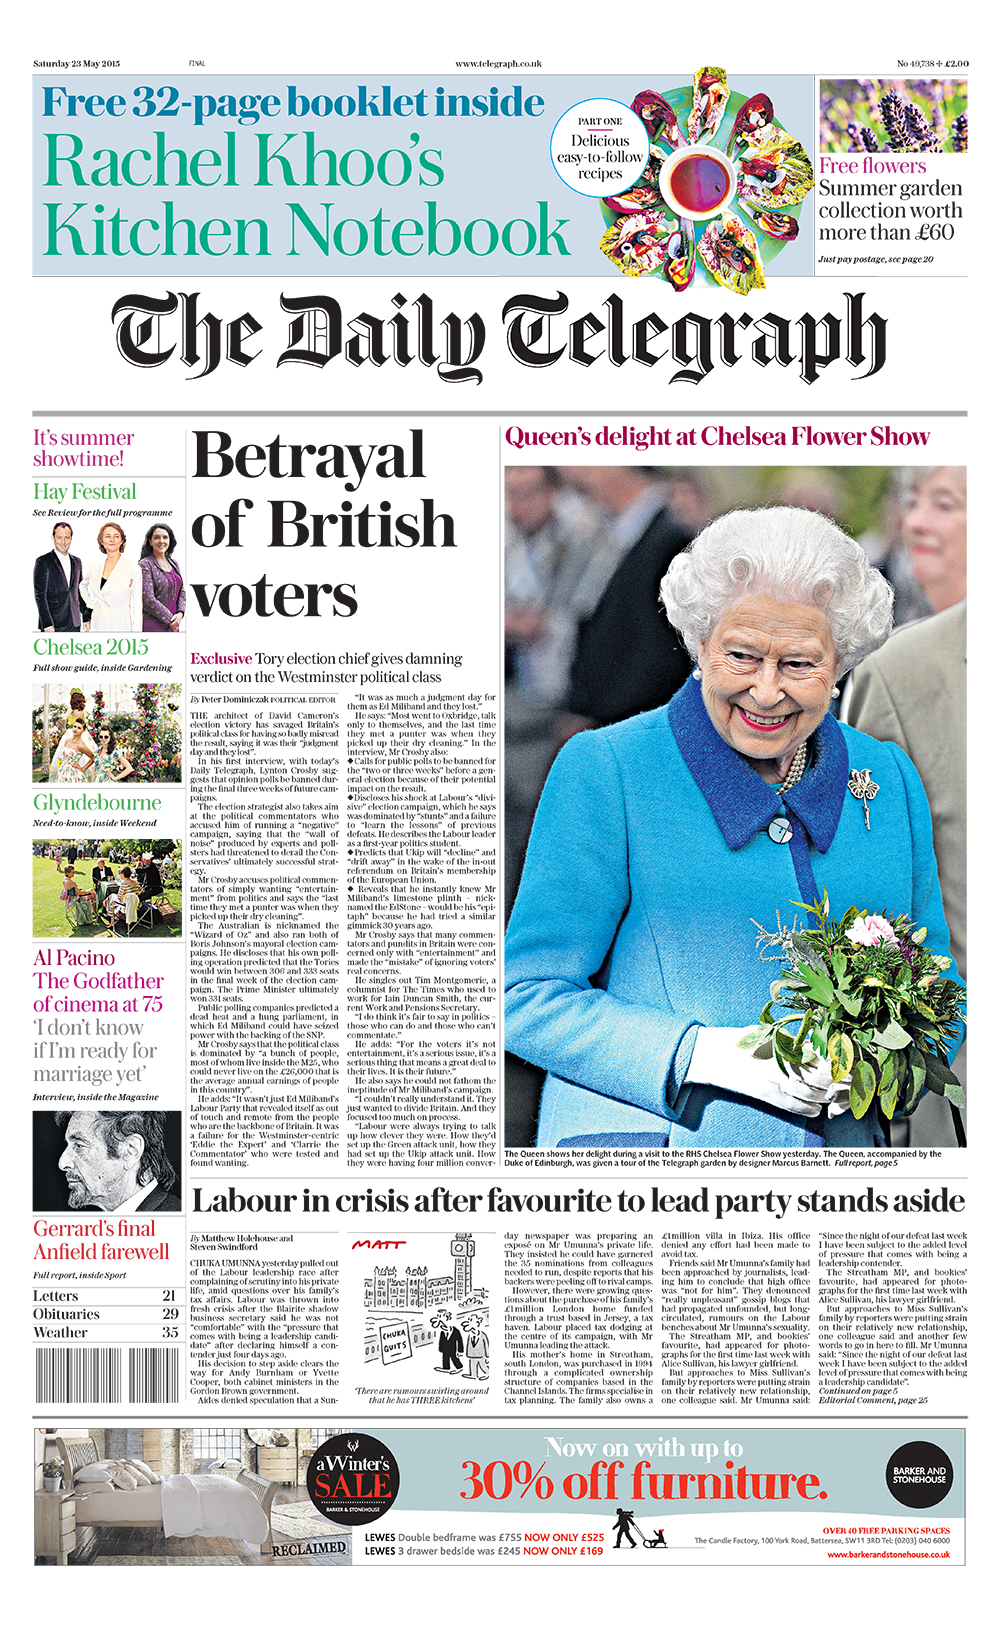 Eye magazine reviews the The Daily Telegraph redesign